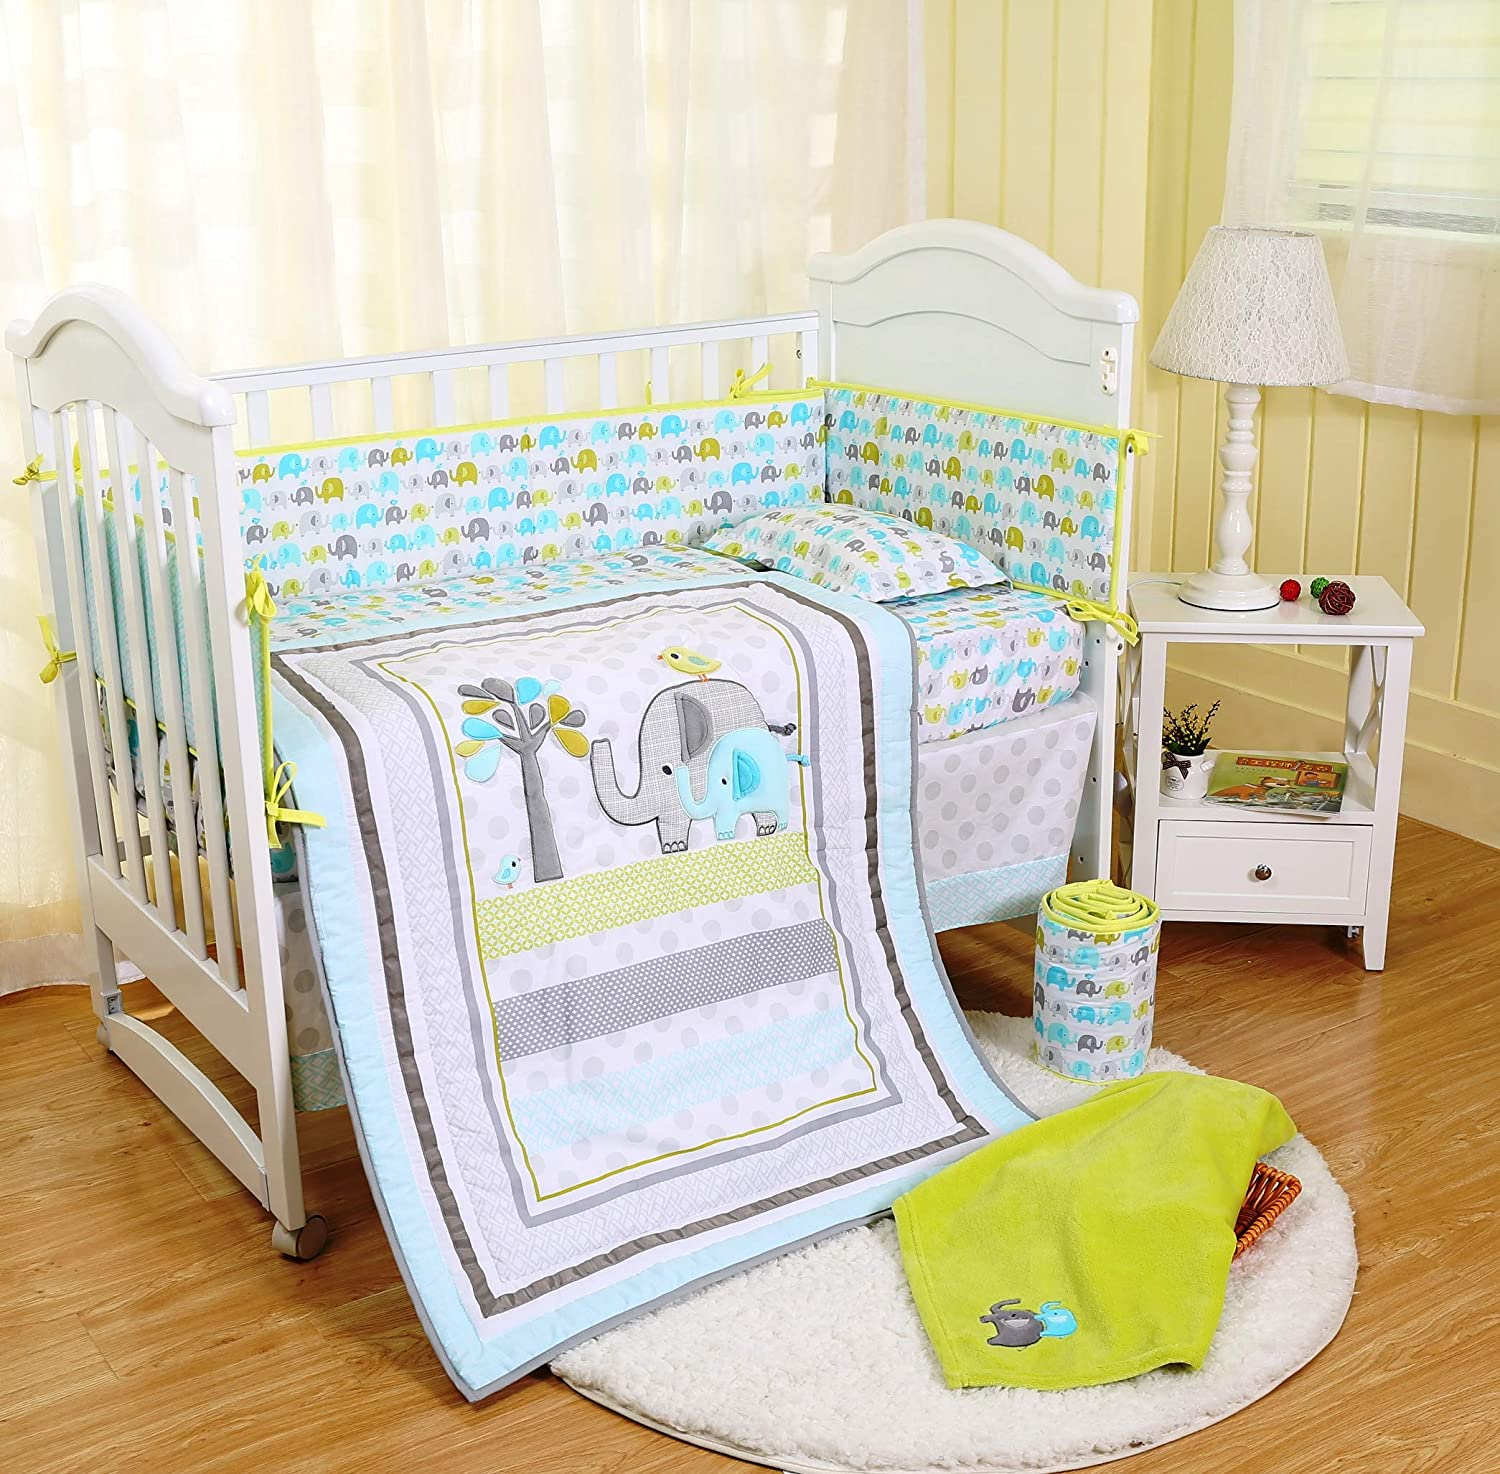 Spring Baby Crib Bedding Set 8 Piece Nursery Crib Bedding Set for Baby Boys and Girls, Including Comforter, Crib Sheet, Crib Skirt, Bumpers, Blanket (Blue/Green/Grey Elephant-8 Piece)